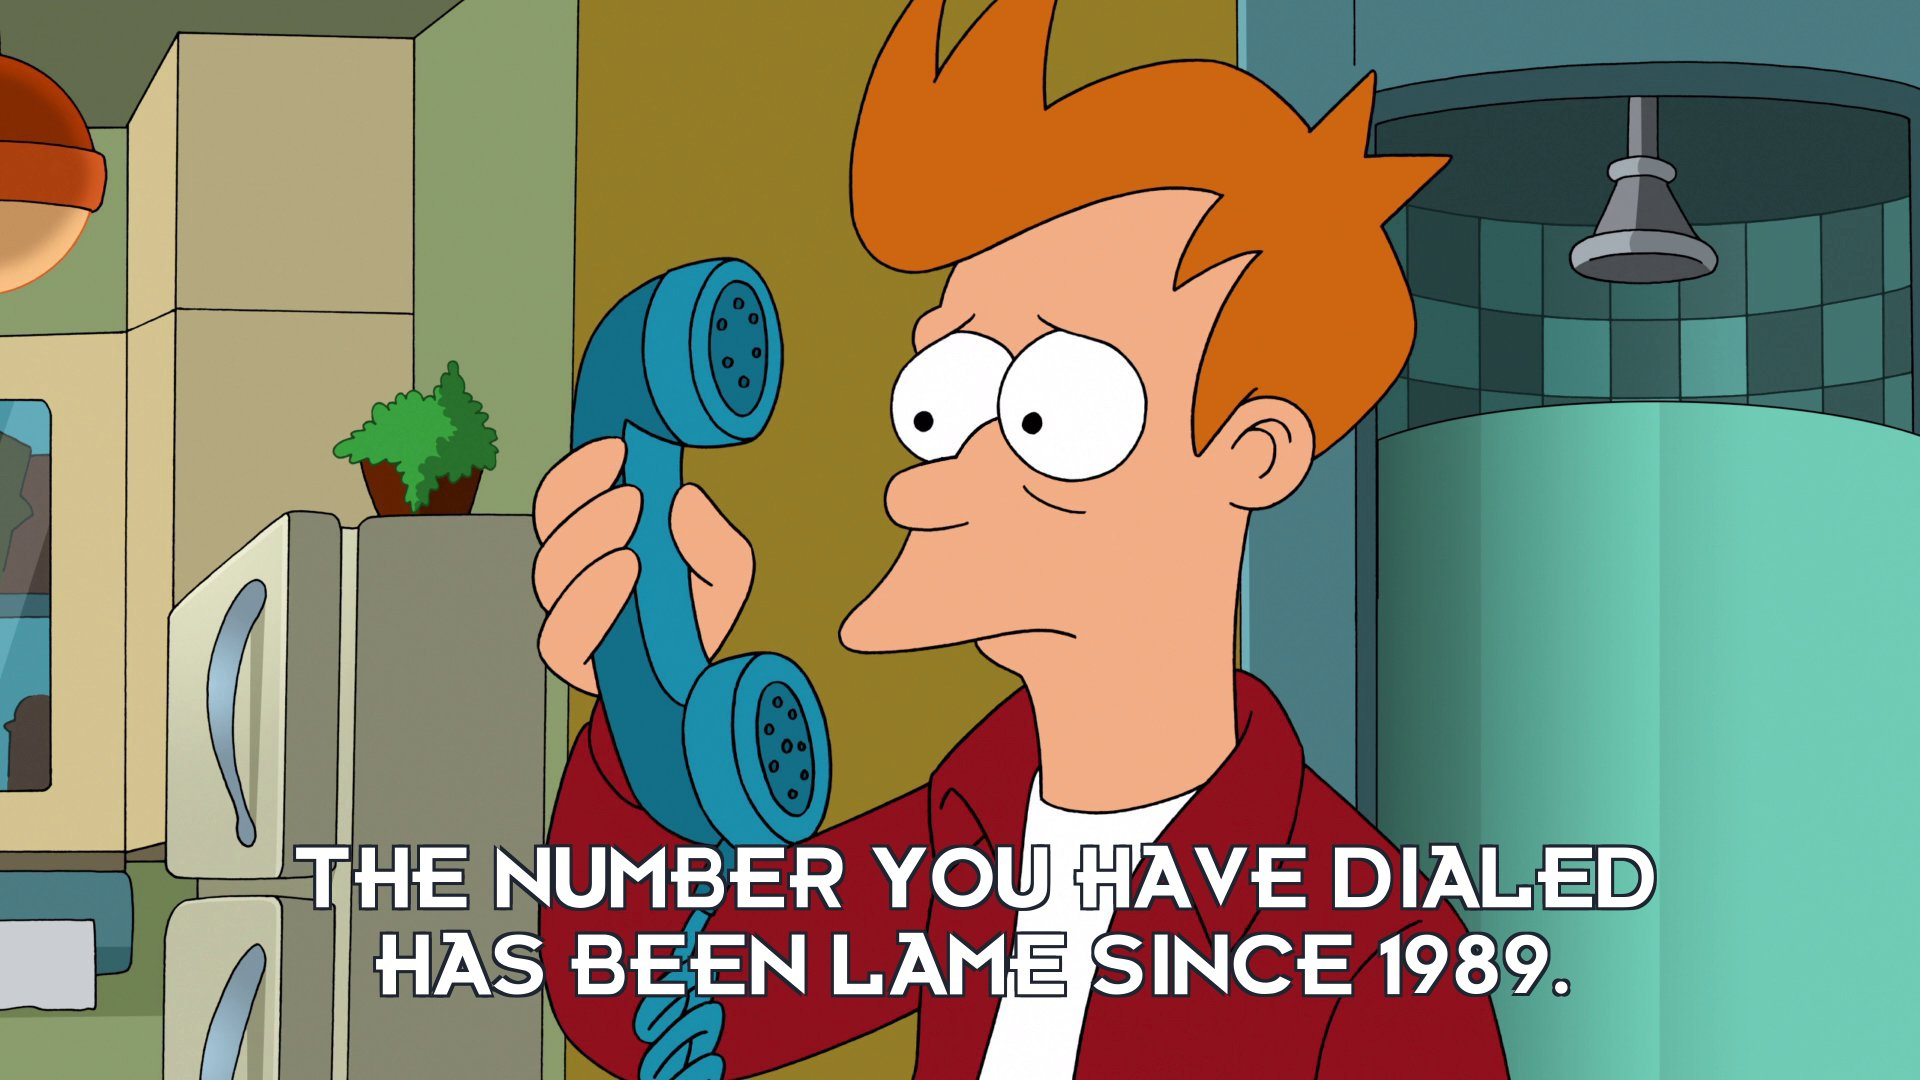 Operator: The number you have dialed has been lame since 1989.